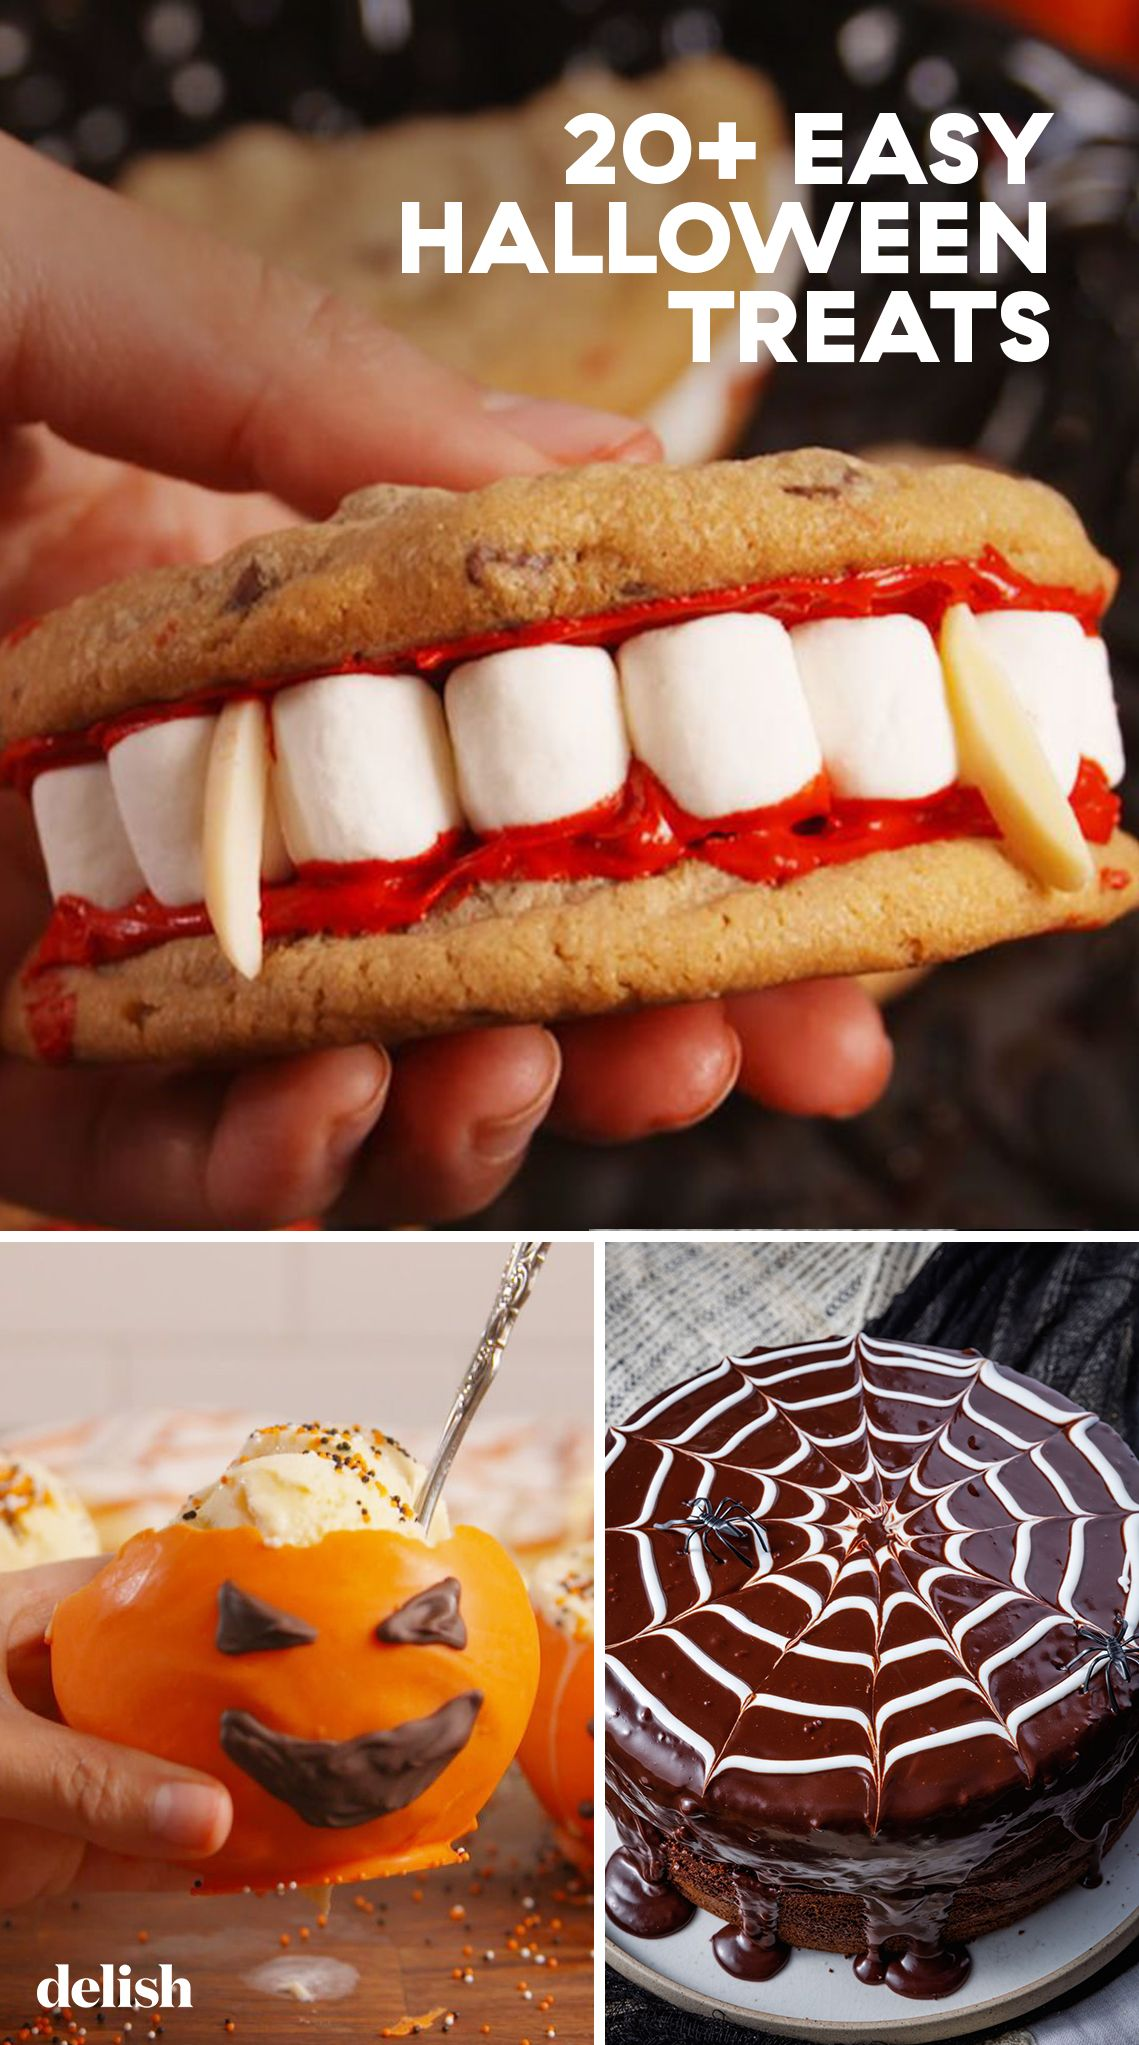 30+ Easy Halloween Party Treat Ideas - Best Recipes for Halloween Treats —Delish.com